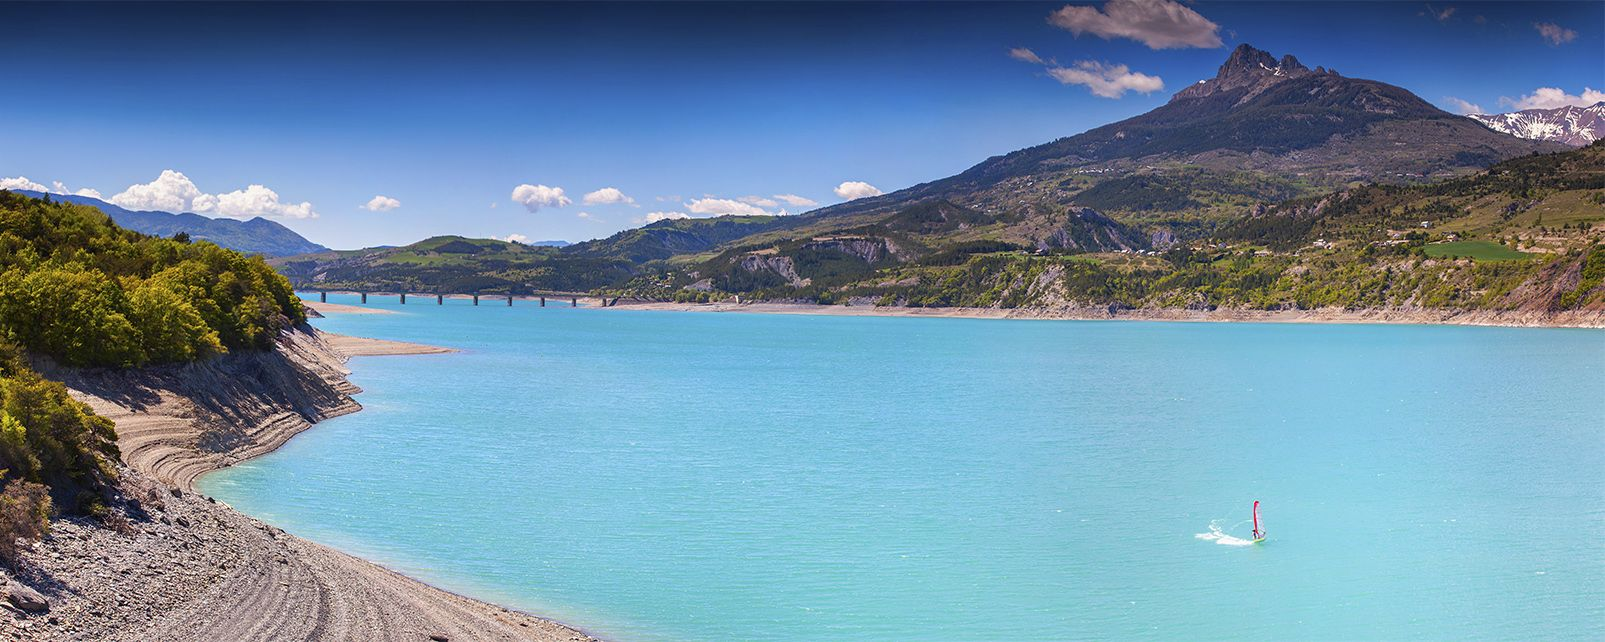 Oronaye Lake, Mountain and River, Sports and activties, Provence-Alpes-Côte d'Azur